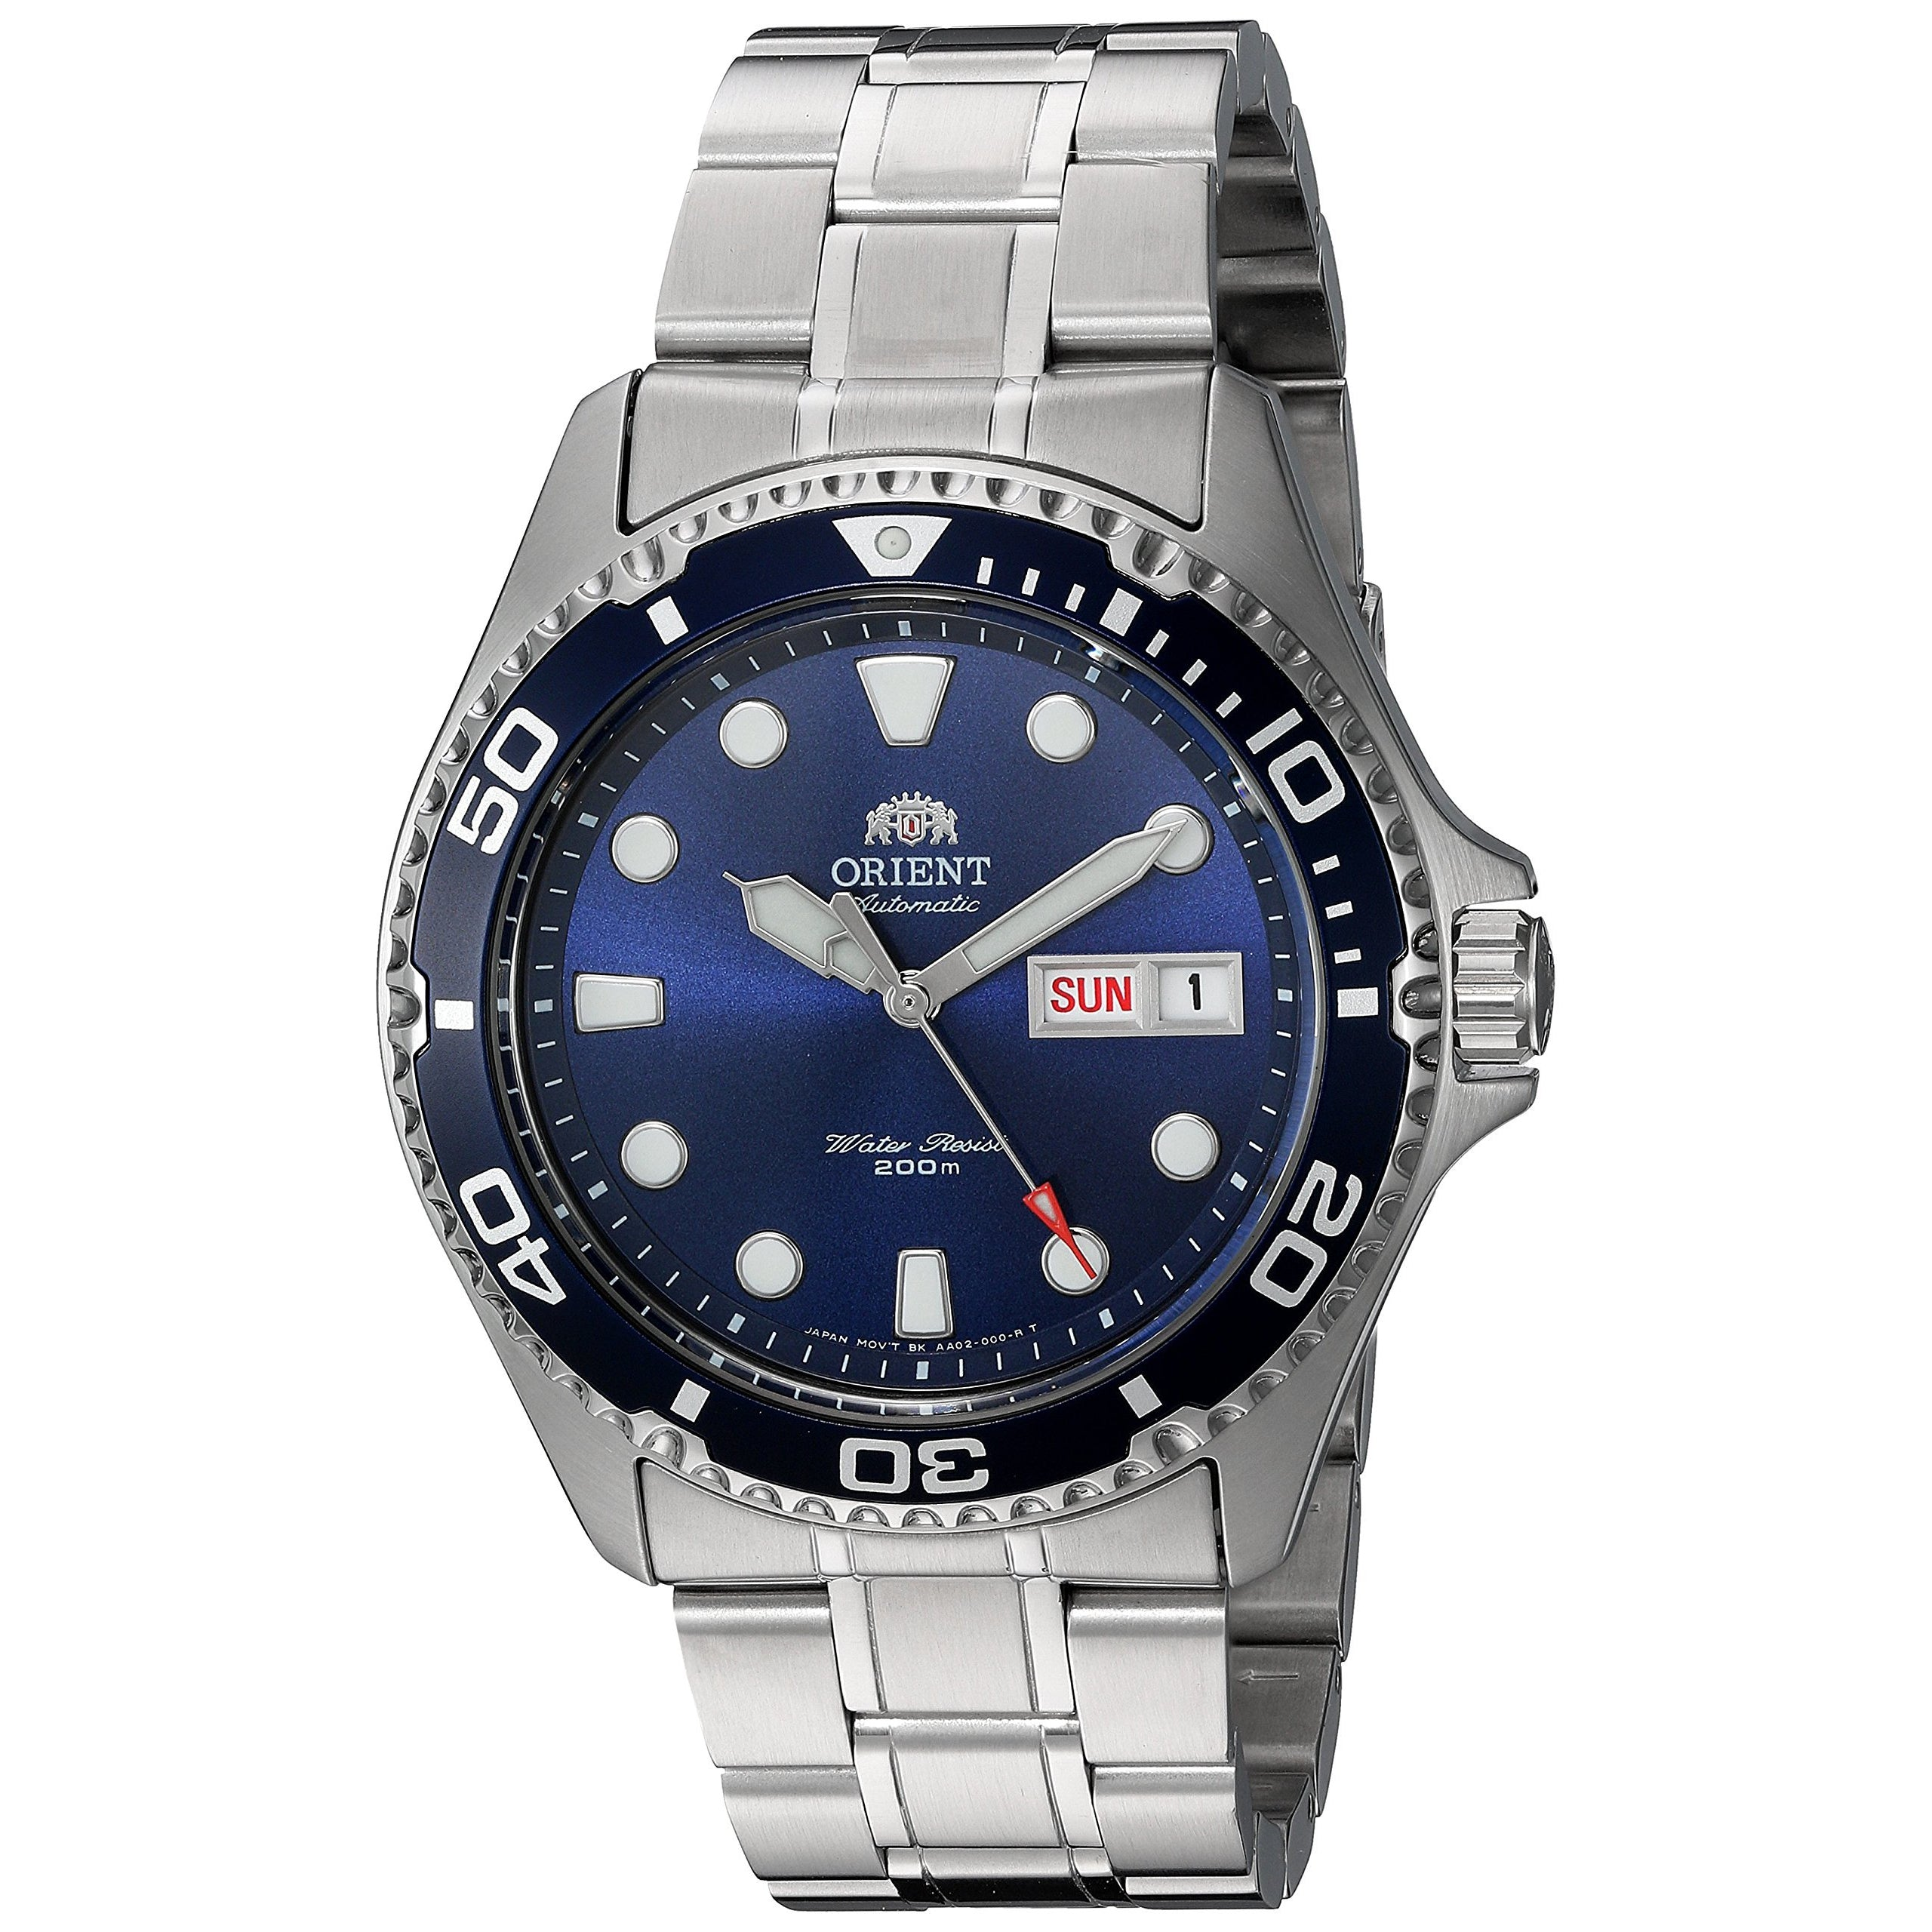 Orient Ray II Blue Automatic Watch with Bracelet - FAA02005D9